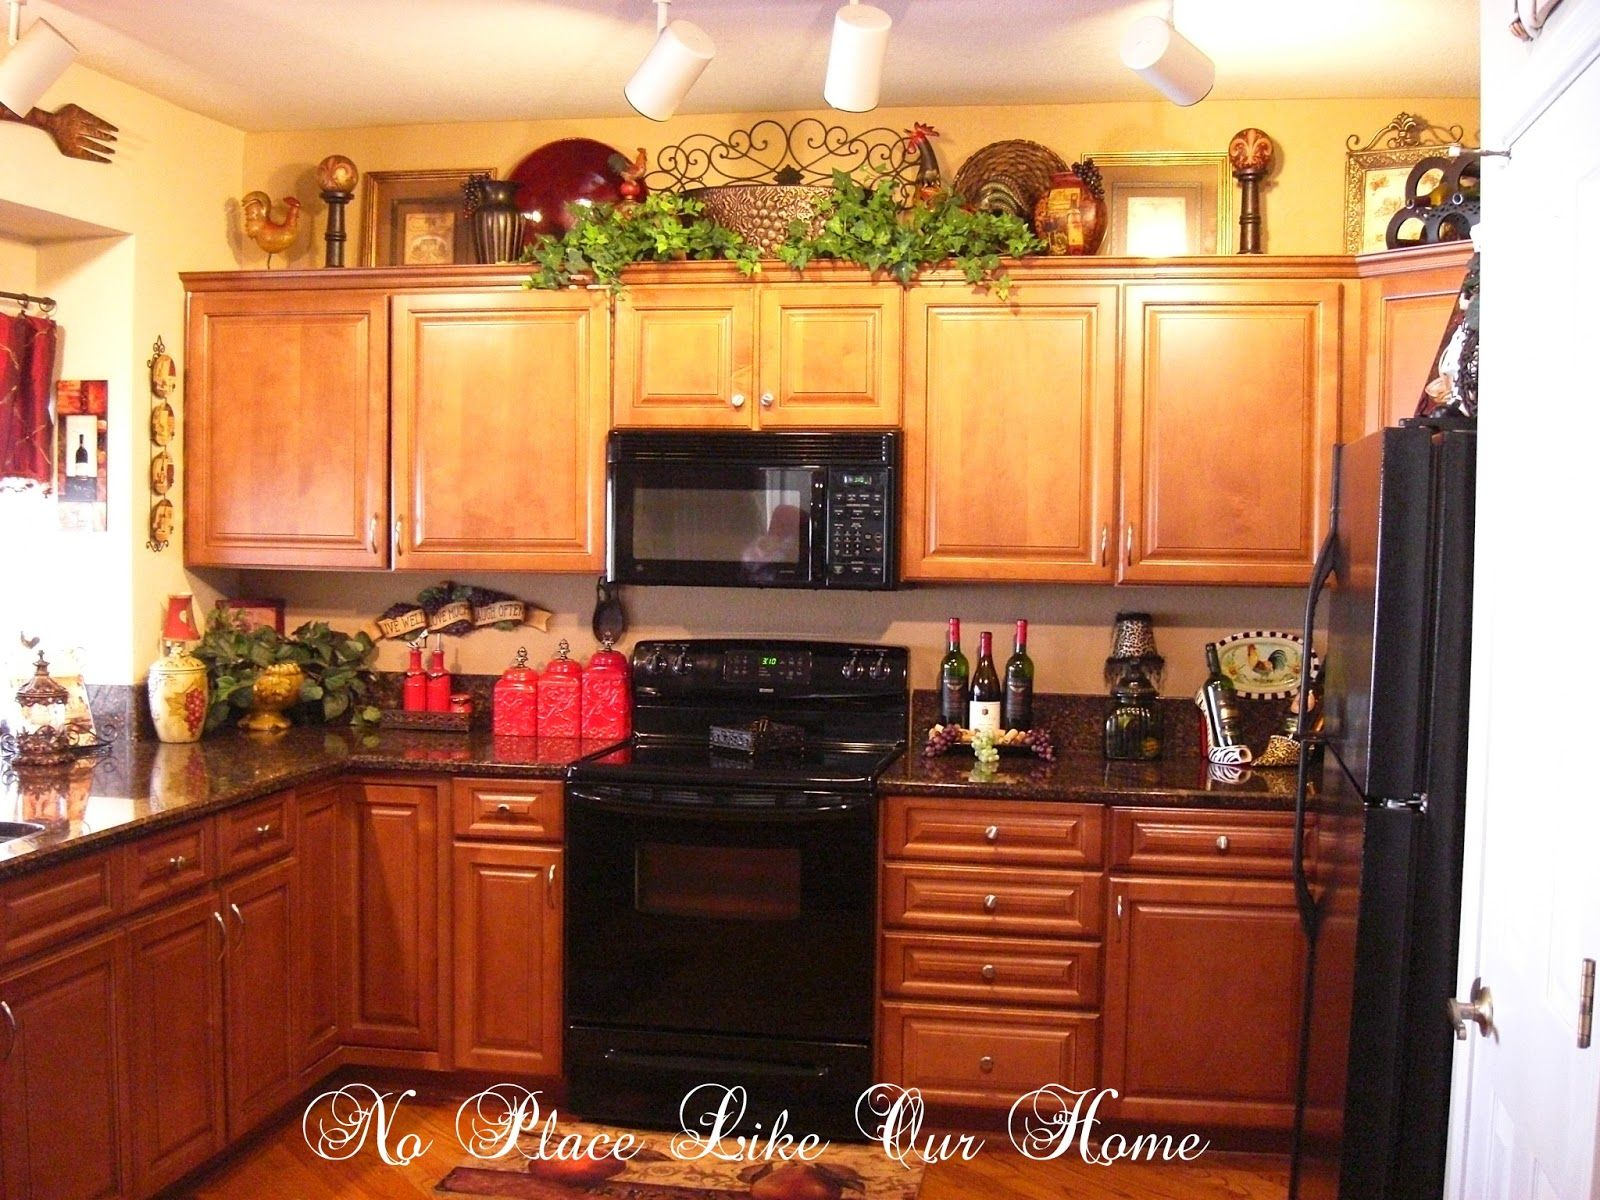 decorating above kitchen cabinets tuscany heres a closer look at the top of the cabinets - Themes For Kitchens Decor